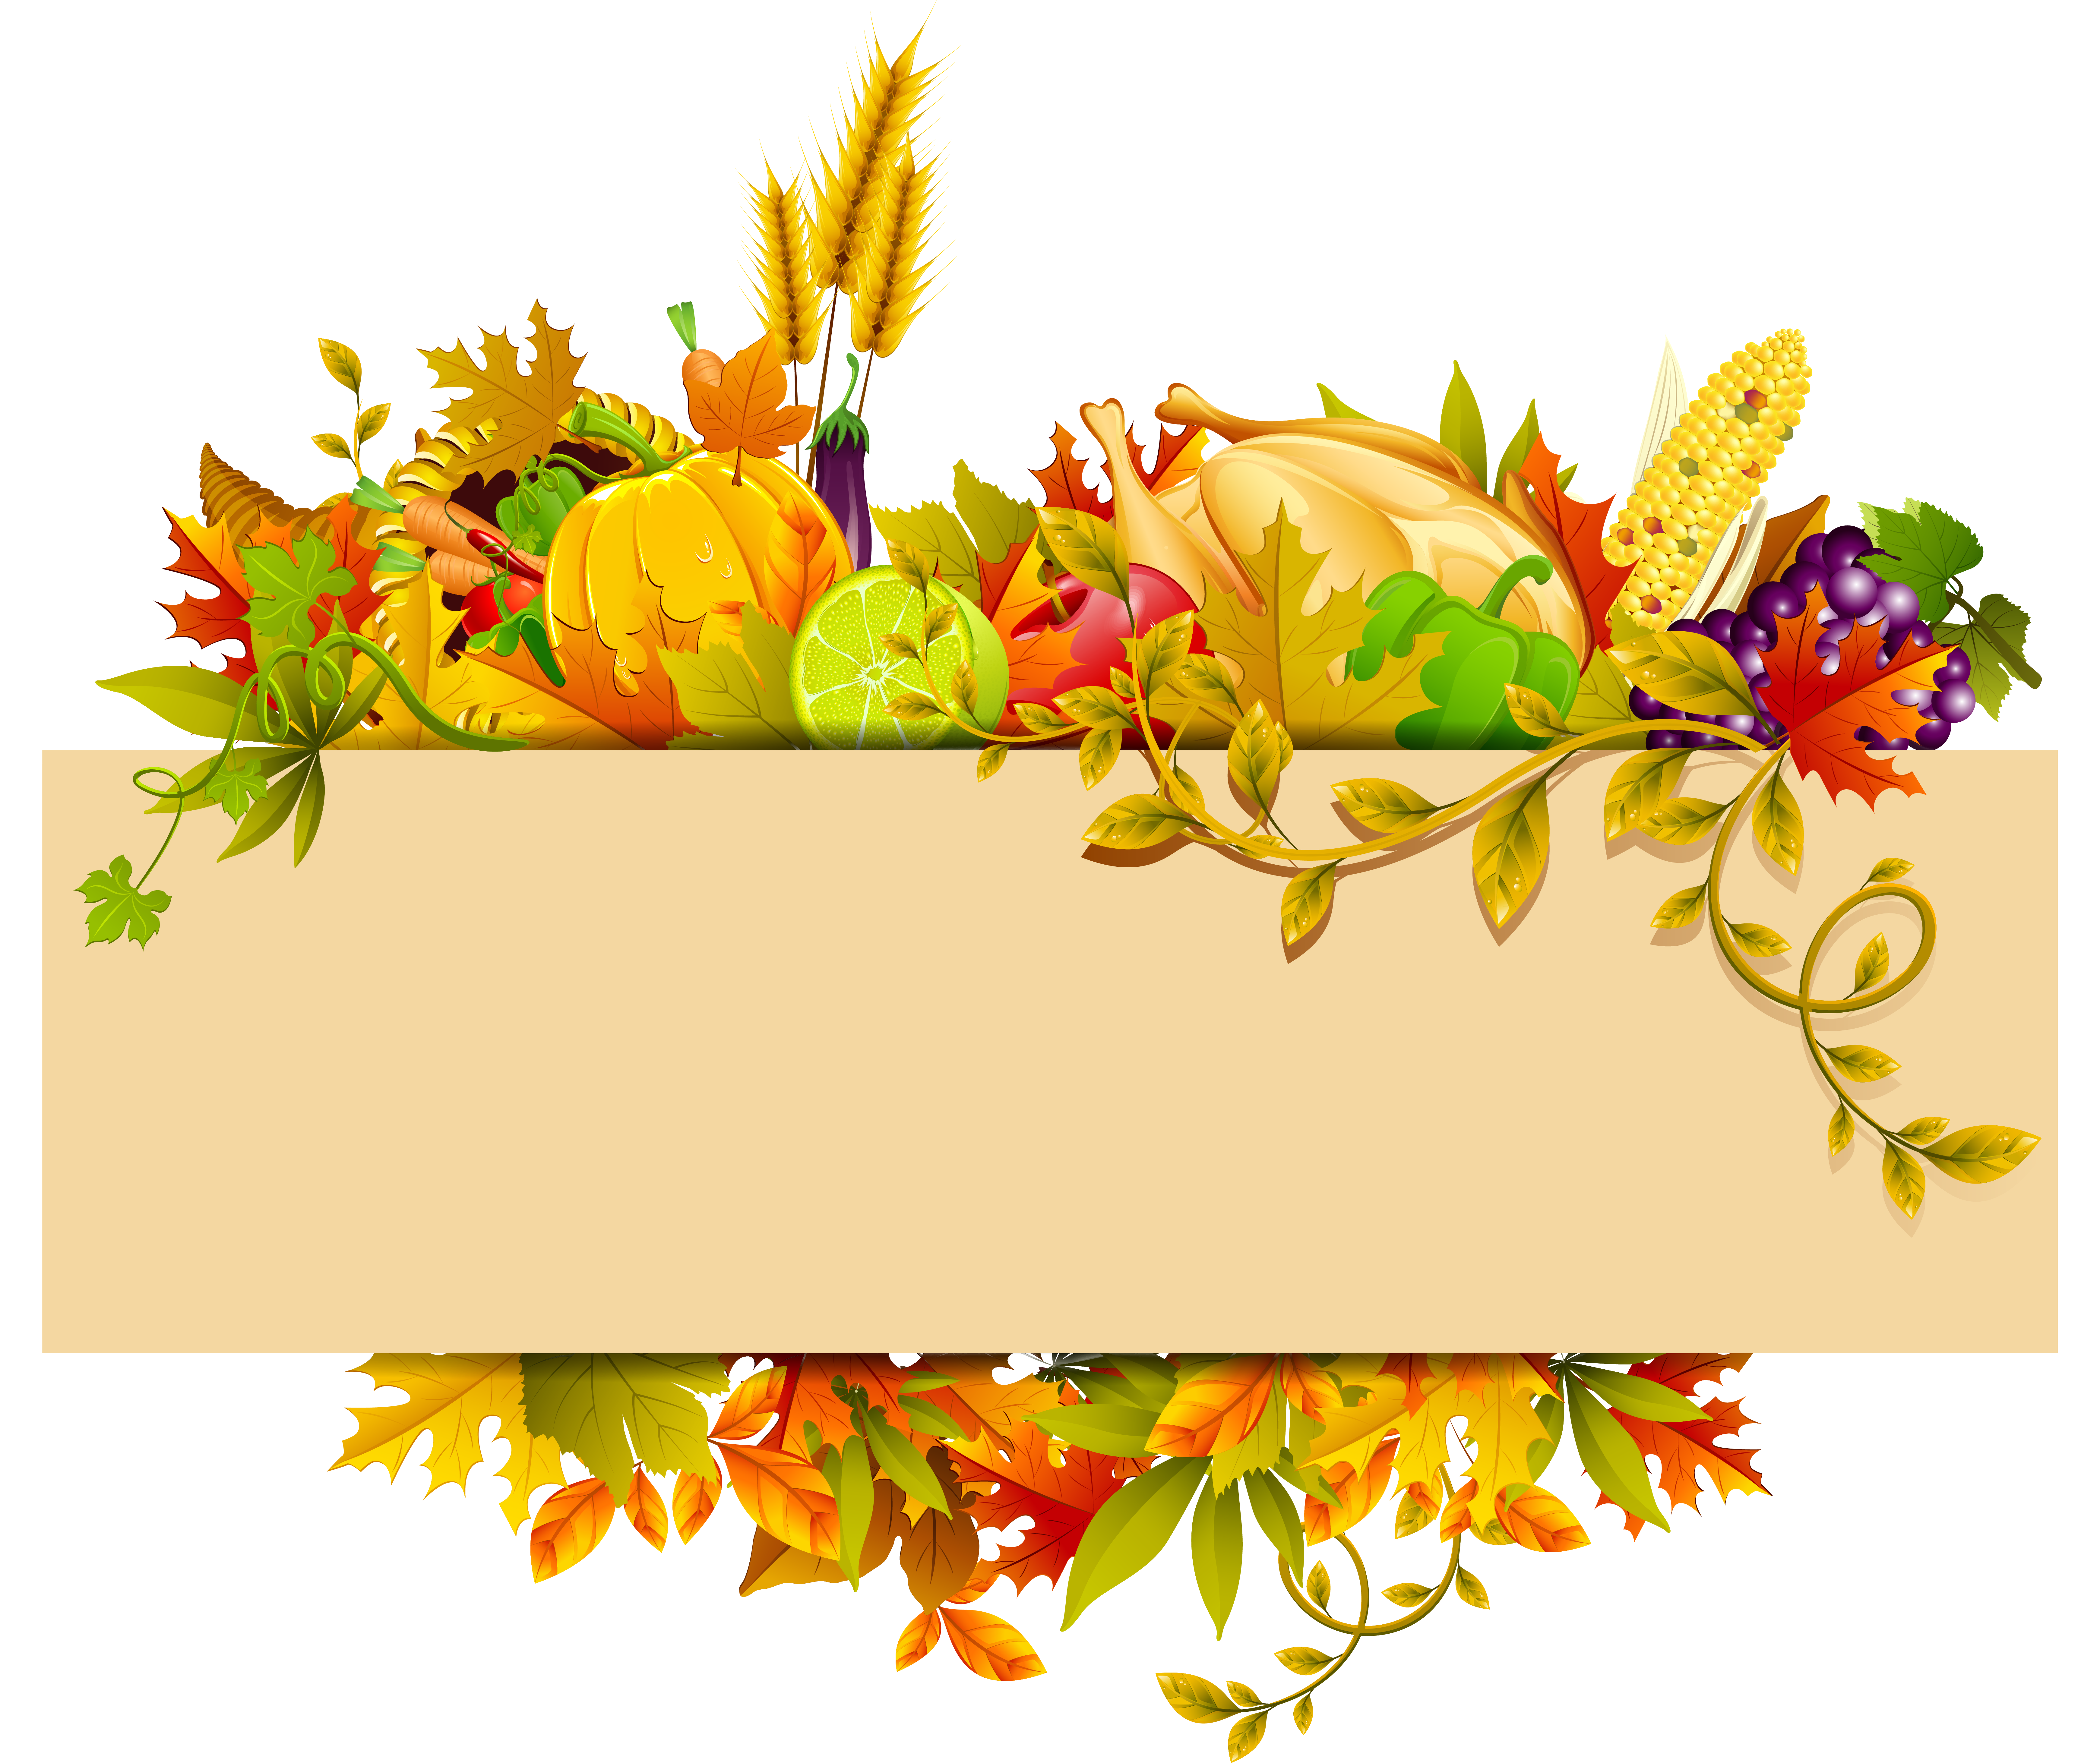 Thanksgiving Background Png & Free Thanksgiving Background.